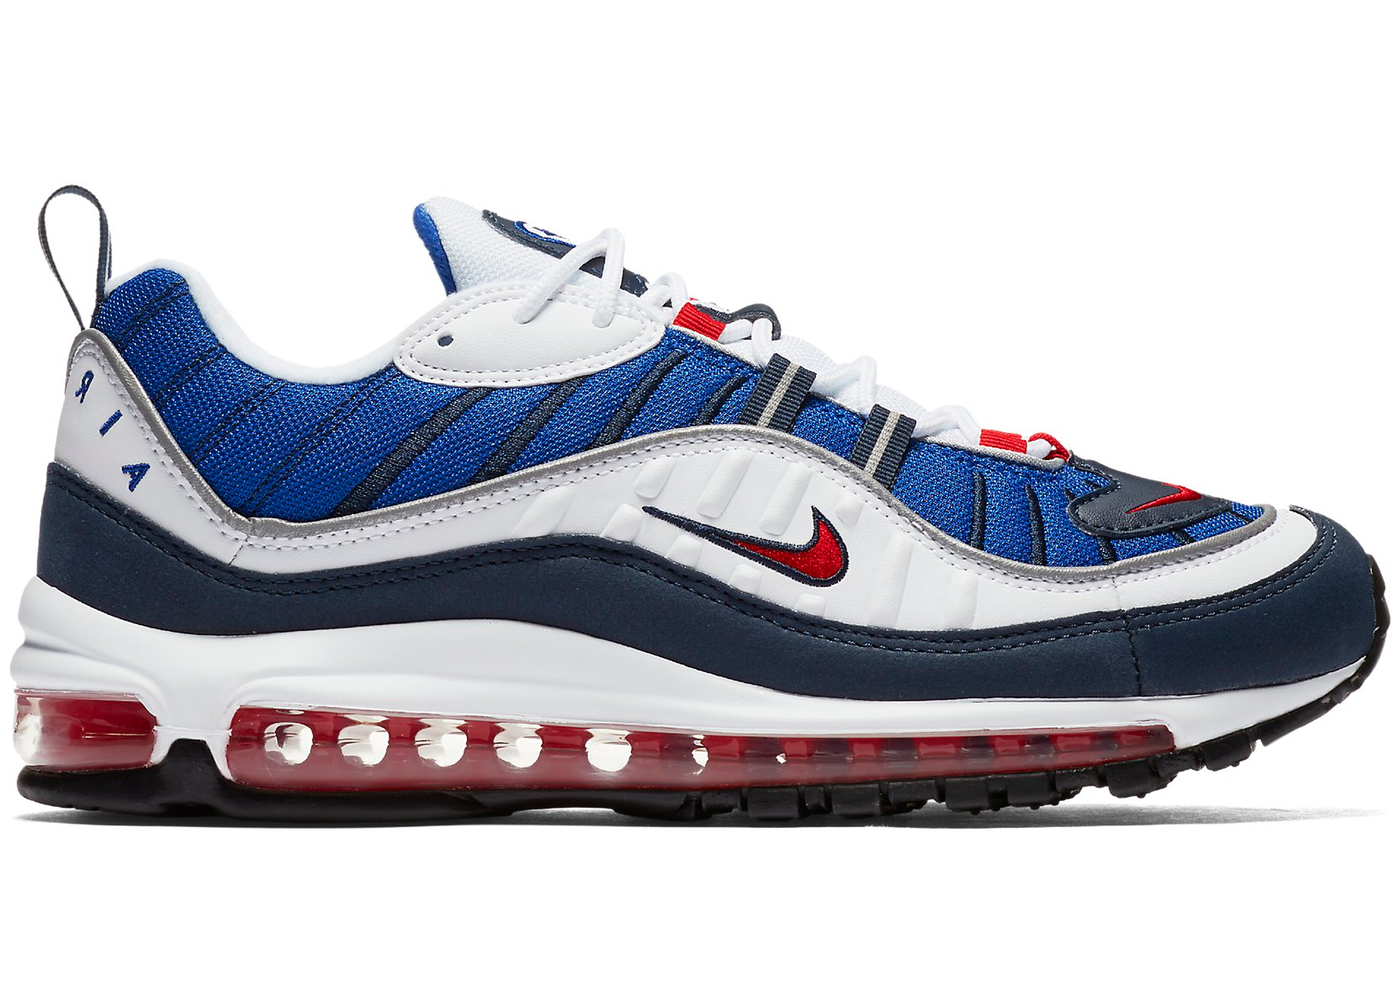 sports shoes fda62 96be0 AirMax98 on JumPic.com